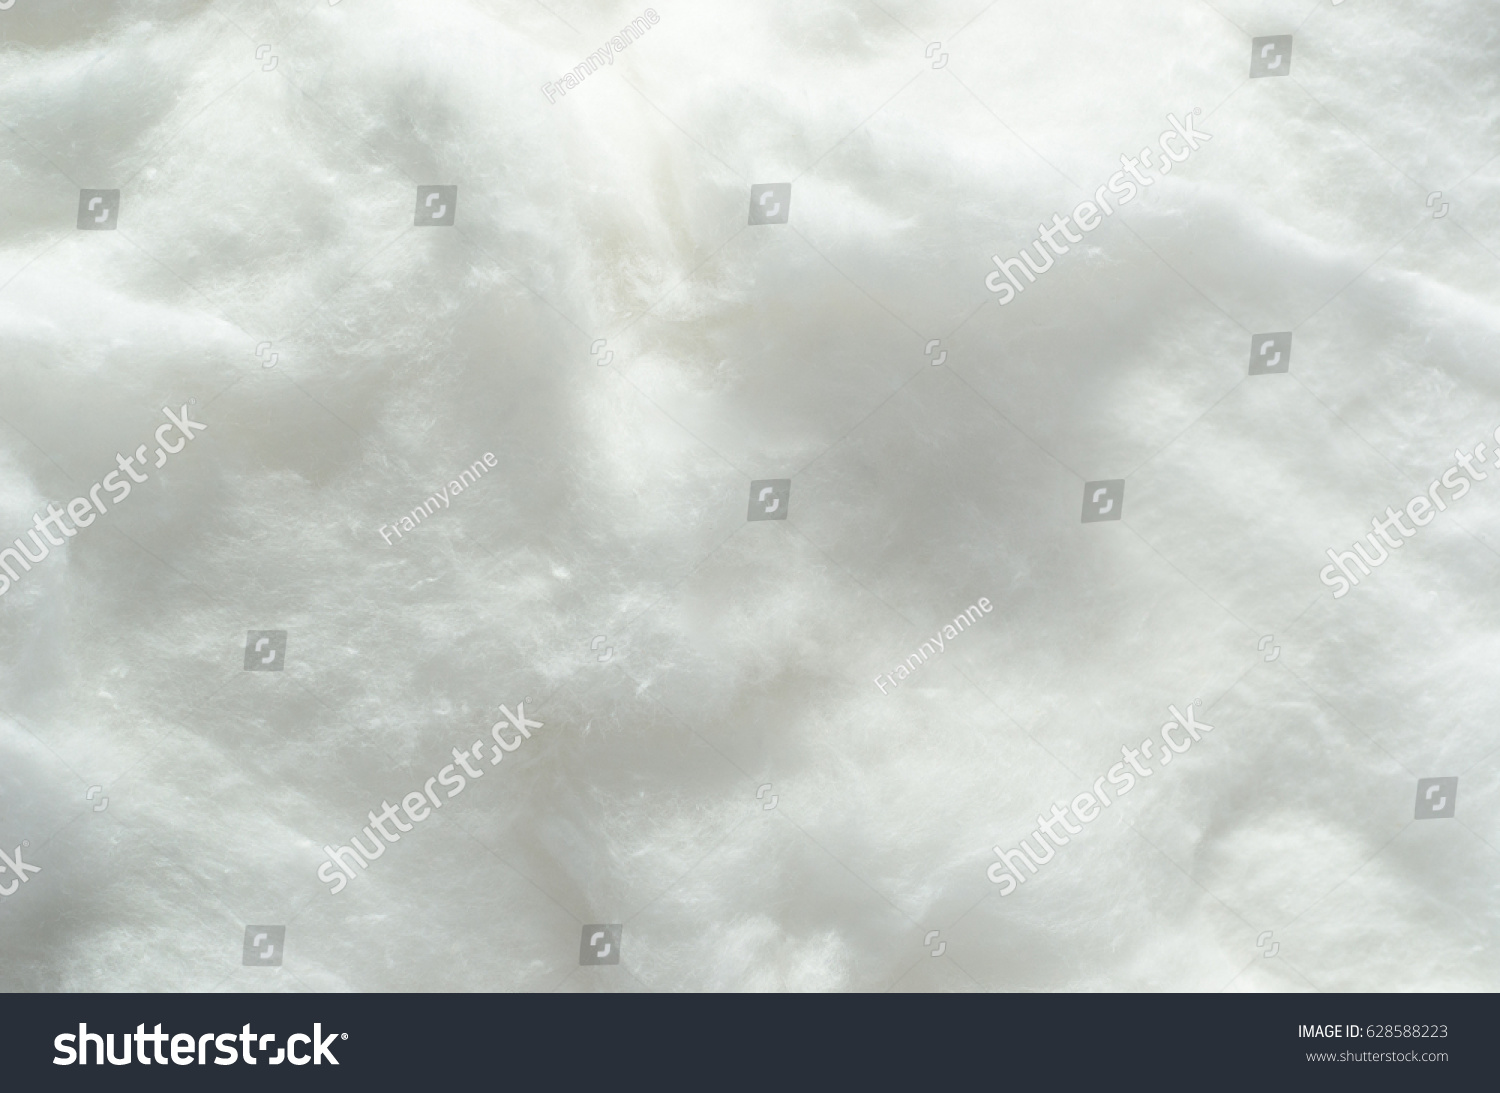 Soft White Cotton Wool Texture Background Stock Photo 628588223 ... for Soft White Cotton Texture  173lyp